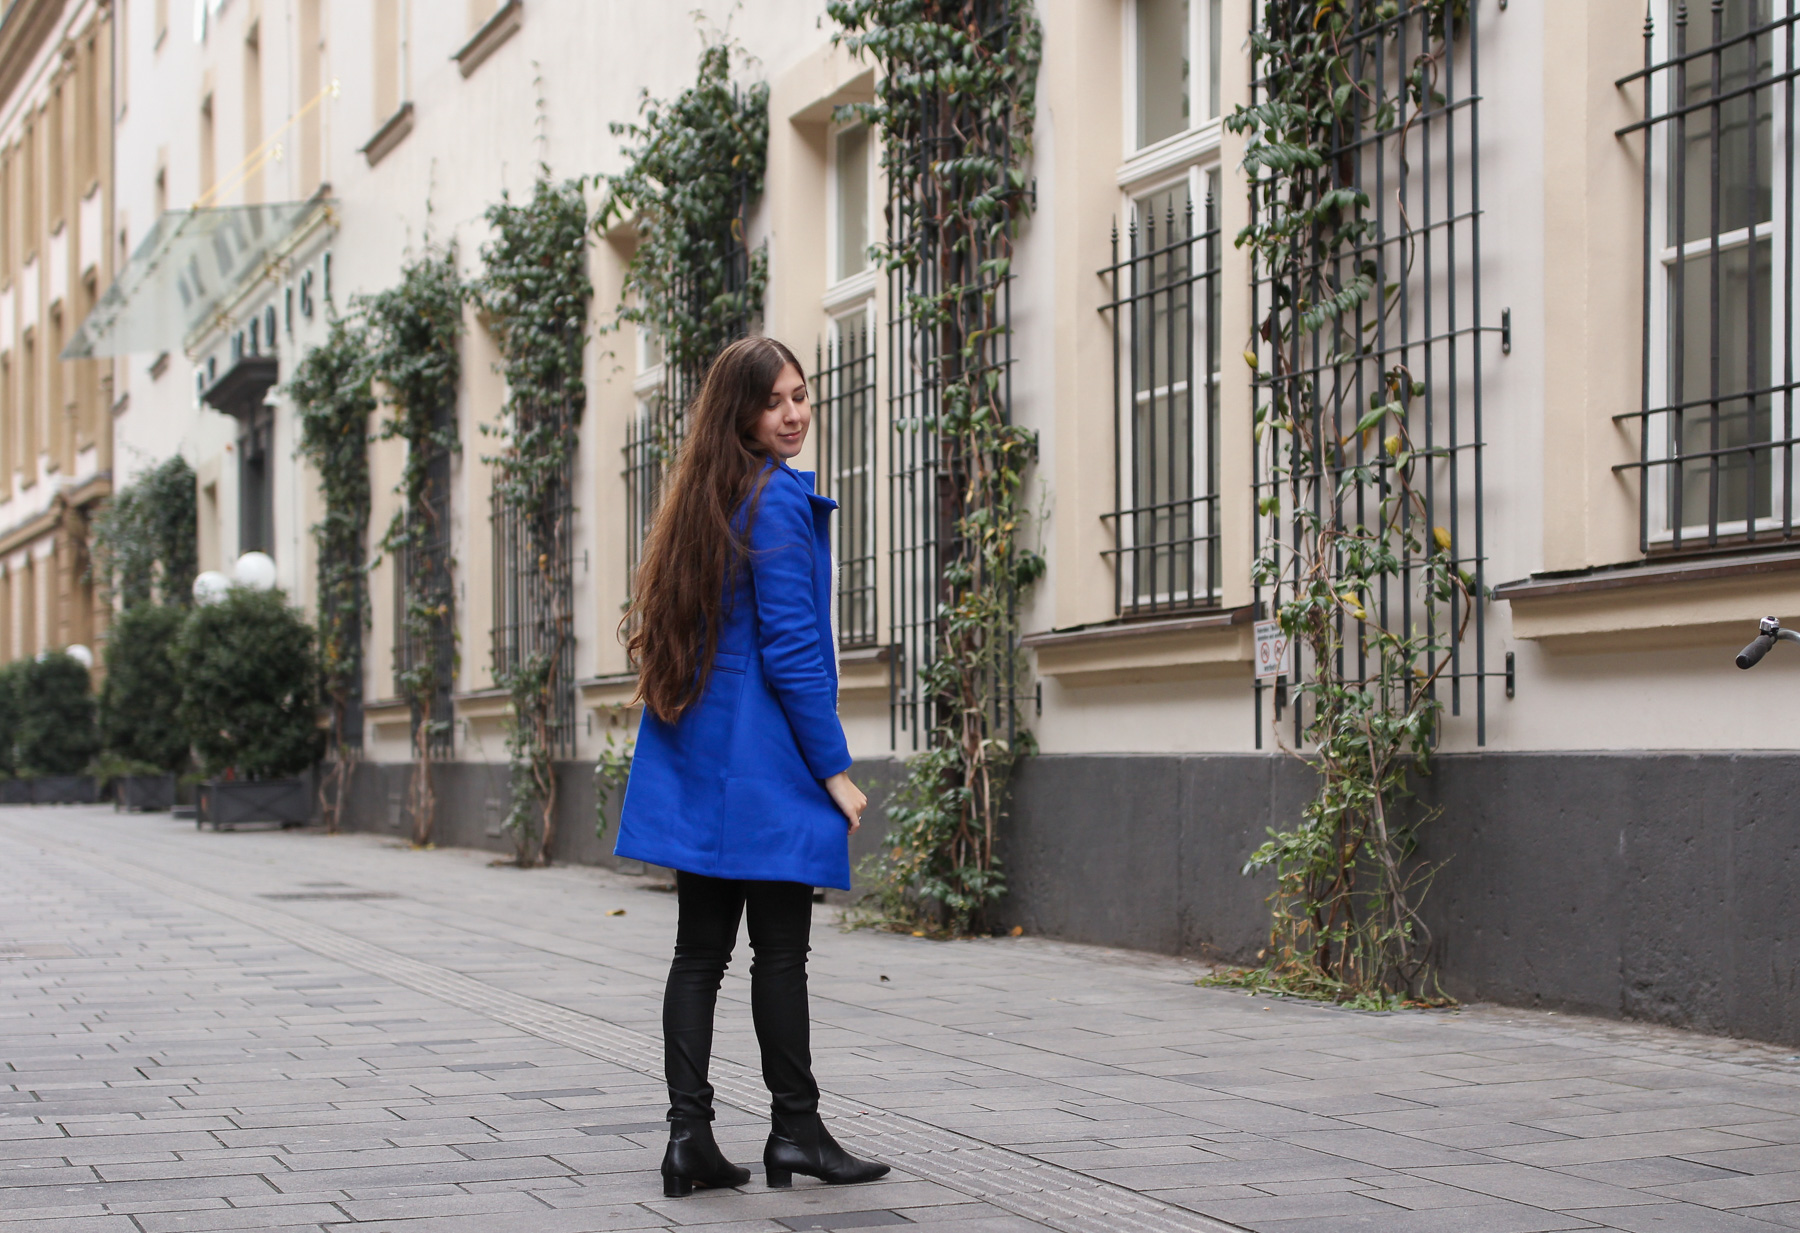 autumn, outfit, desigual, blue coat, electric blue, kuschelpullover, acne jensen boots, look a like, buffalo boots, blauer mantel, fashionblog, fashionblogger, fashion, blog, blogger, düsseldorf, modeblog